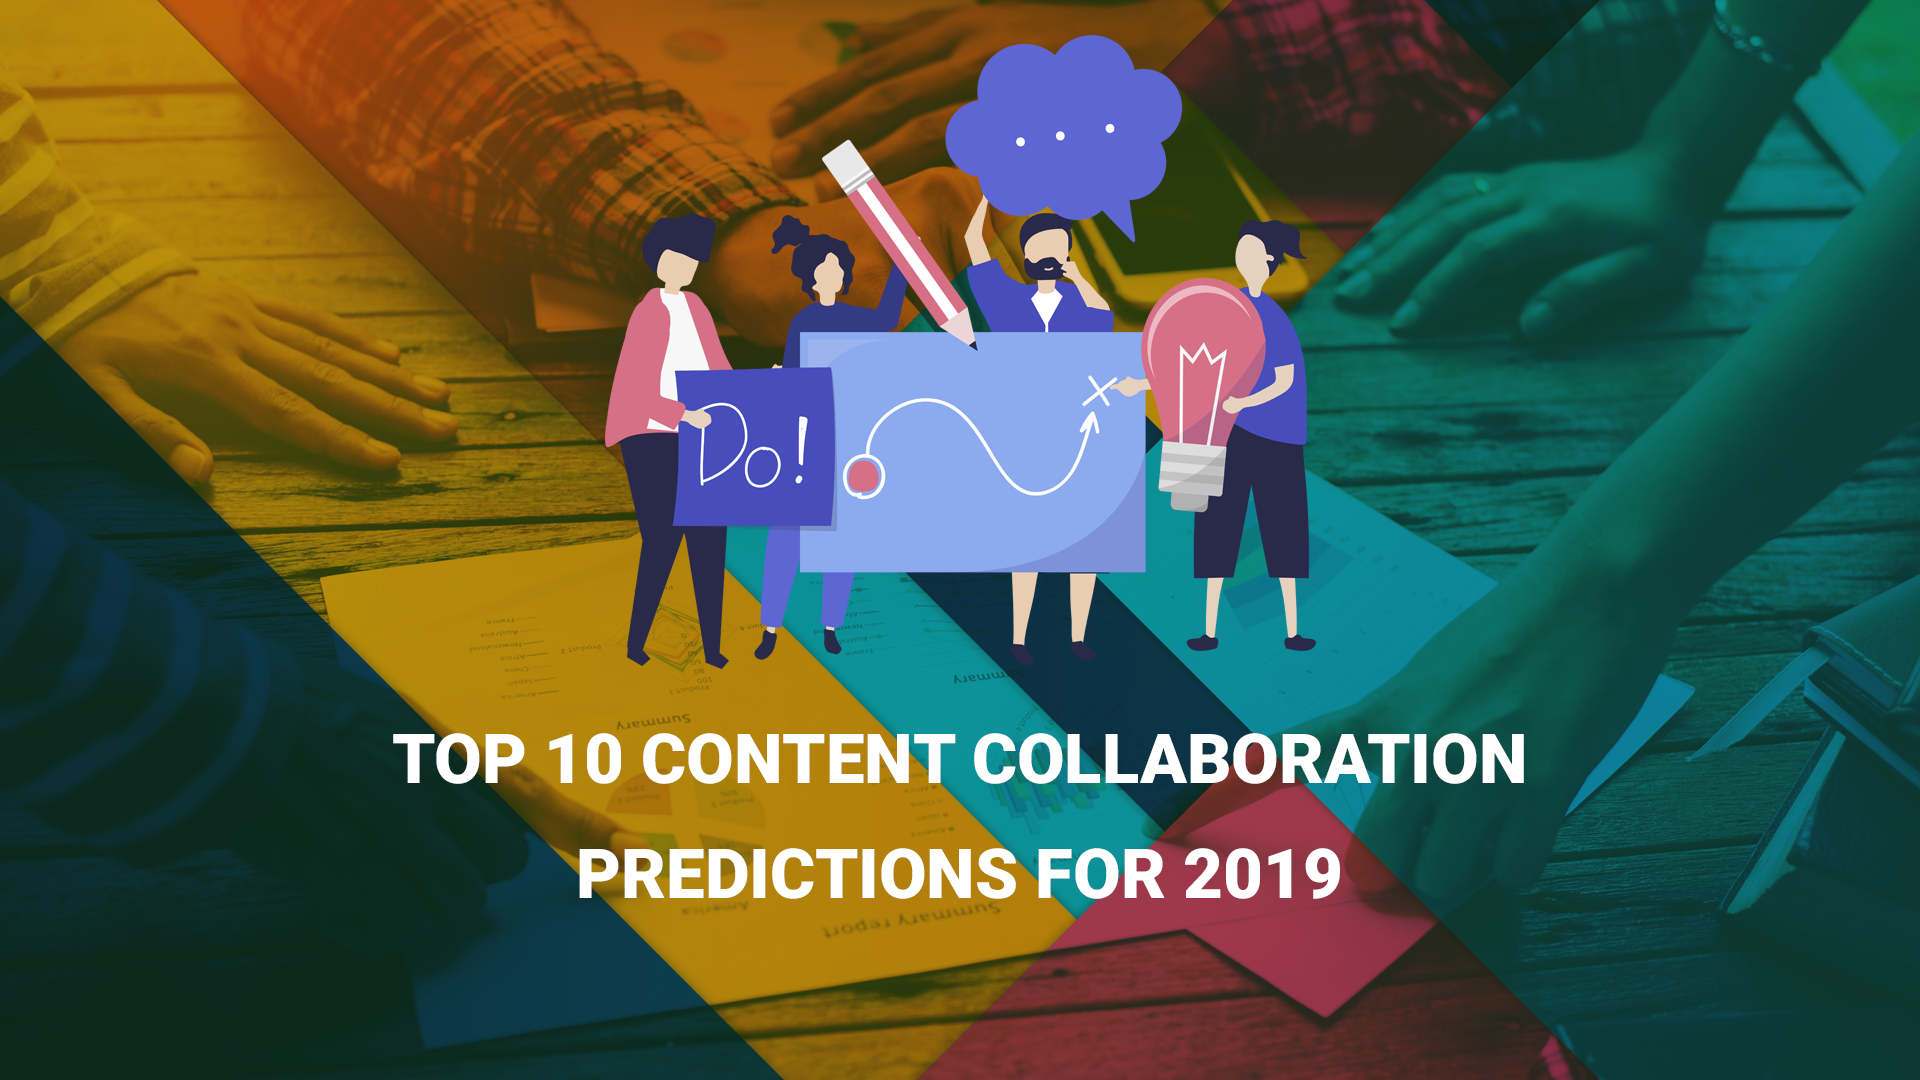 Top 10 Content Collaboration Predictions for 2019